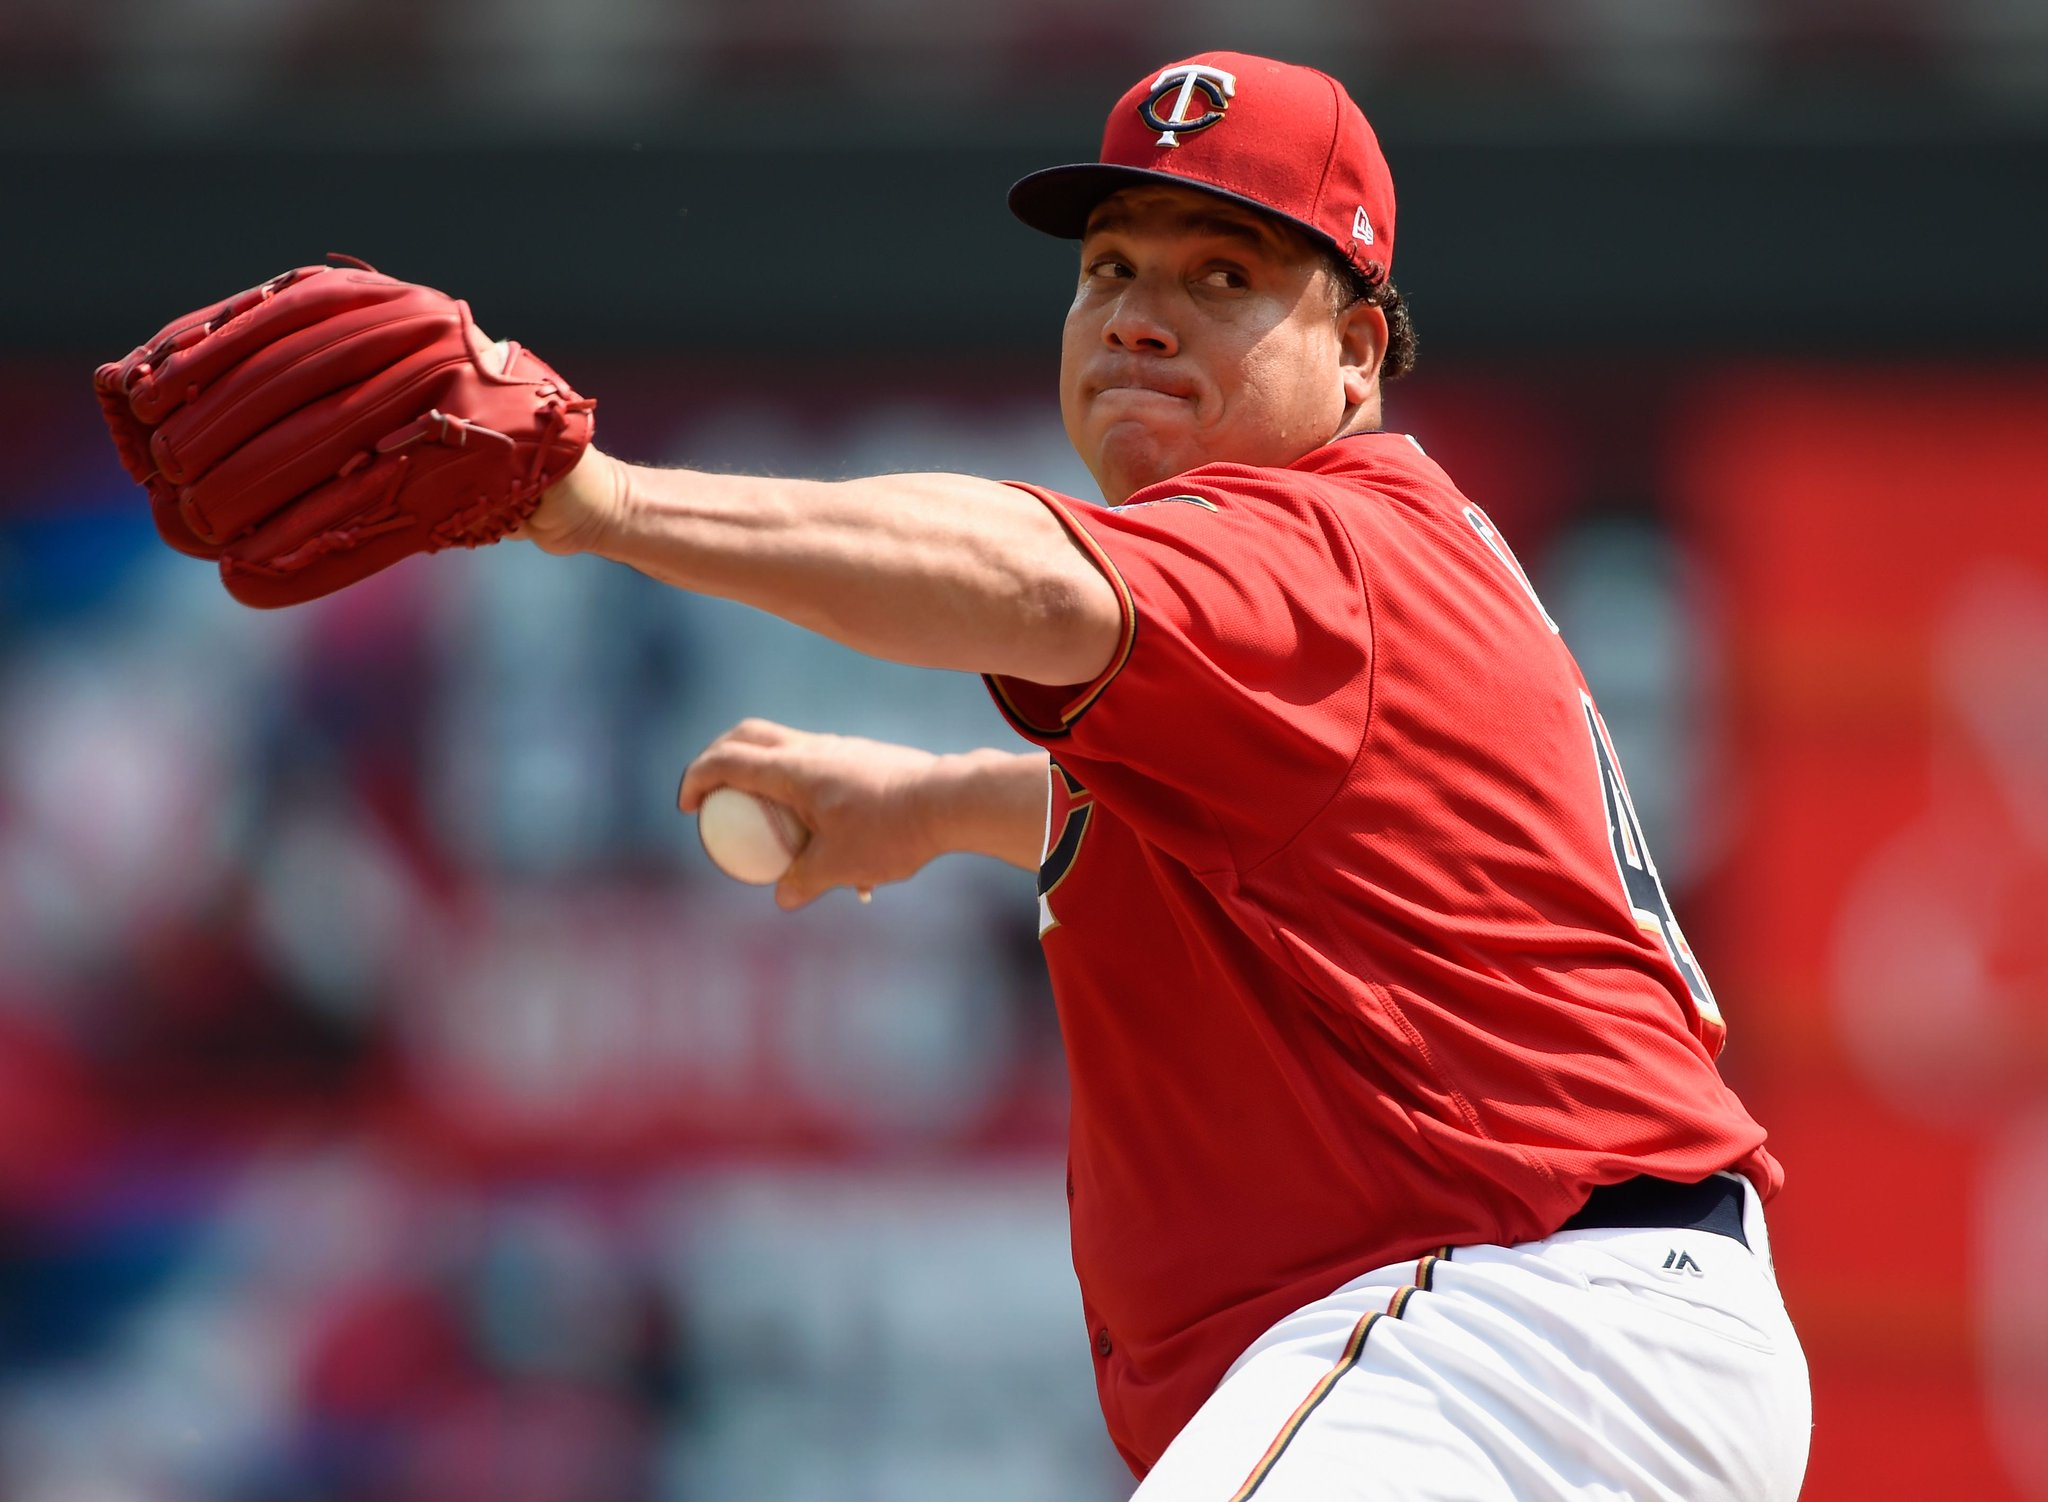 Bartolo Colon becomes 18th pitcher to defeat all 30 teams https://t.co/7Qe3Opz1Cb https://t.co/CYvehuPIS7